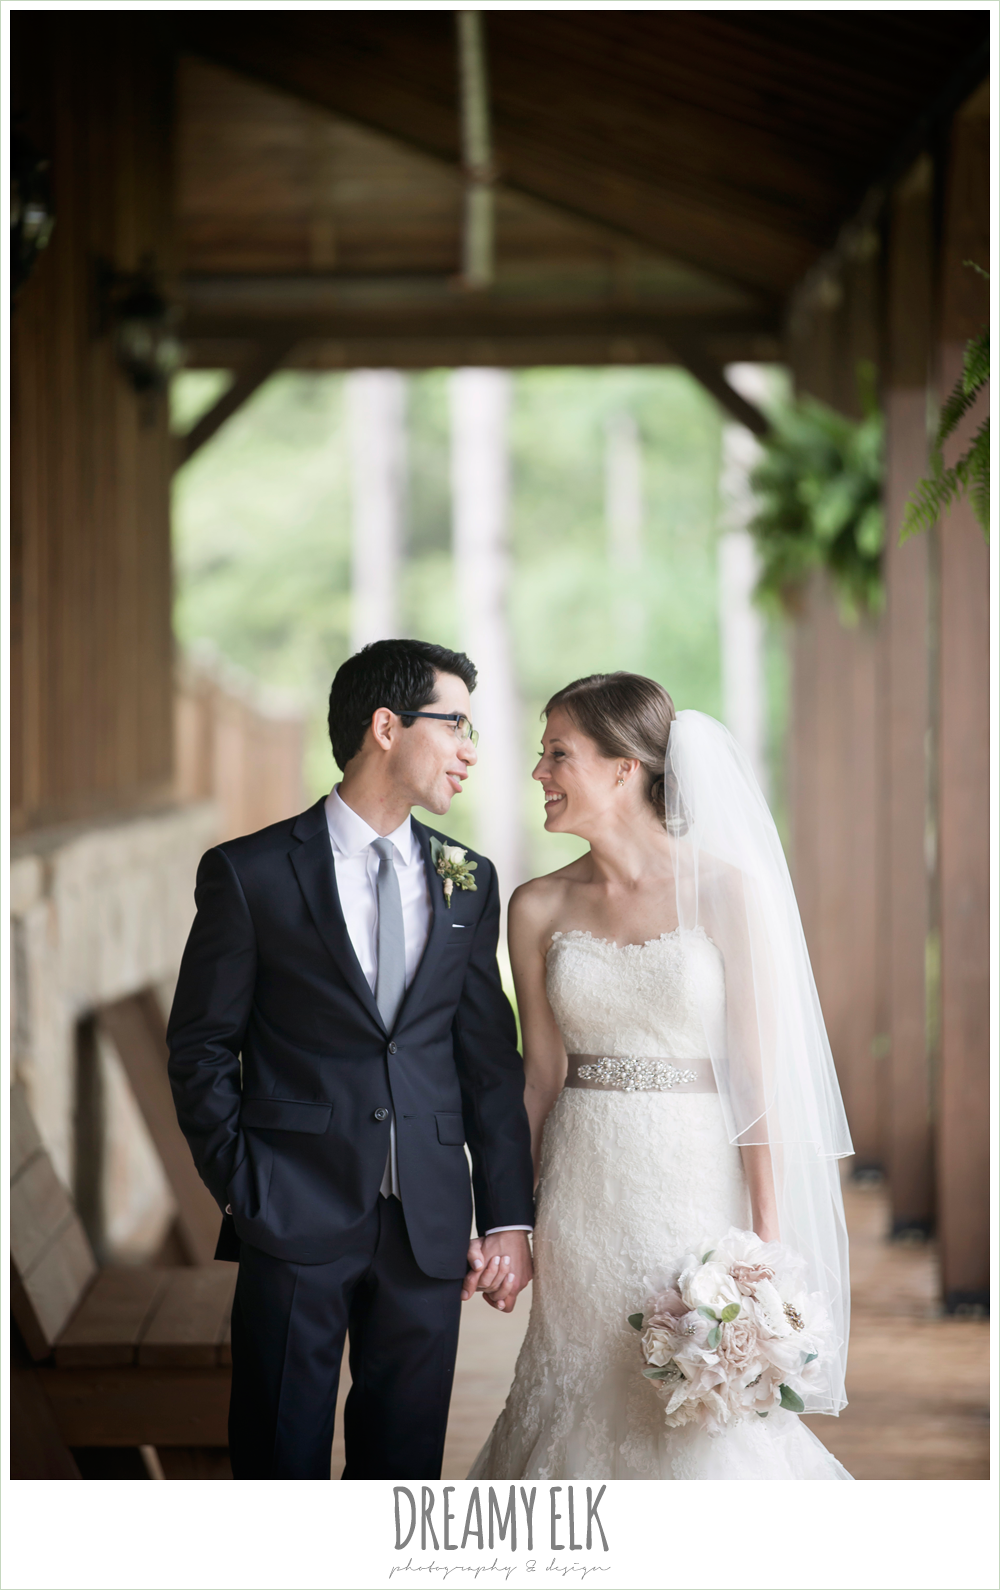 bride and groom, strapless lace pronovias wedding dress, navy suit and blue tie, navy gray and white wedding, spring rainy wedding at crystal springs, houston, texas {dreamy elk photography and design}